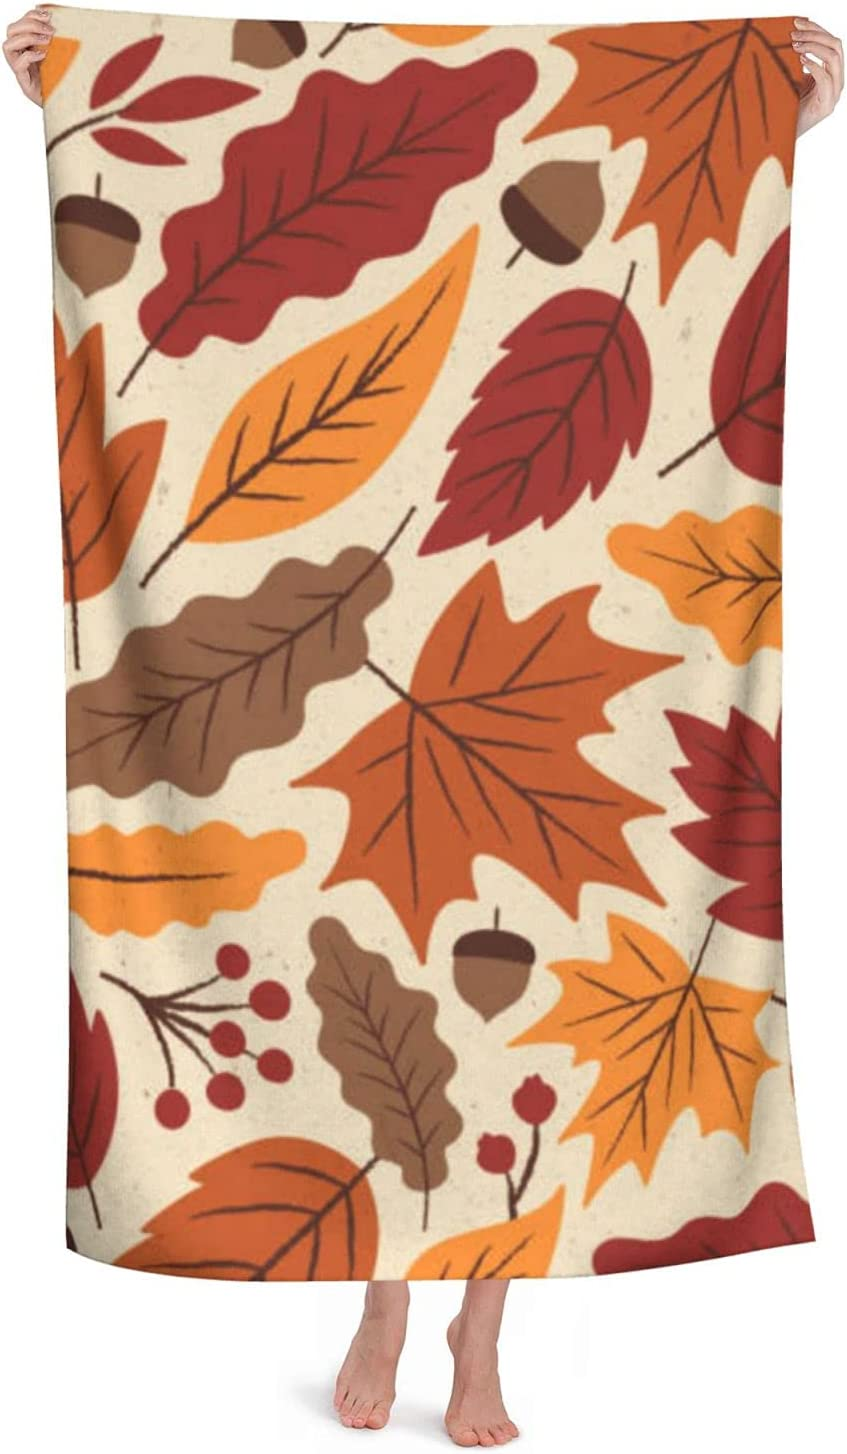 Large 4 years warranty Beach Towel Autumn Leaves Oversized Blanket - Ranking TOP4 Cotton 100%